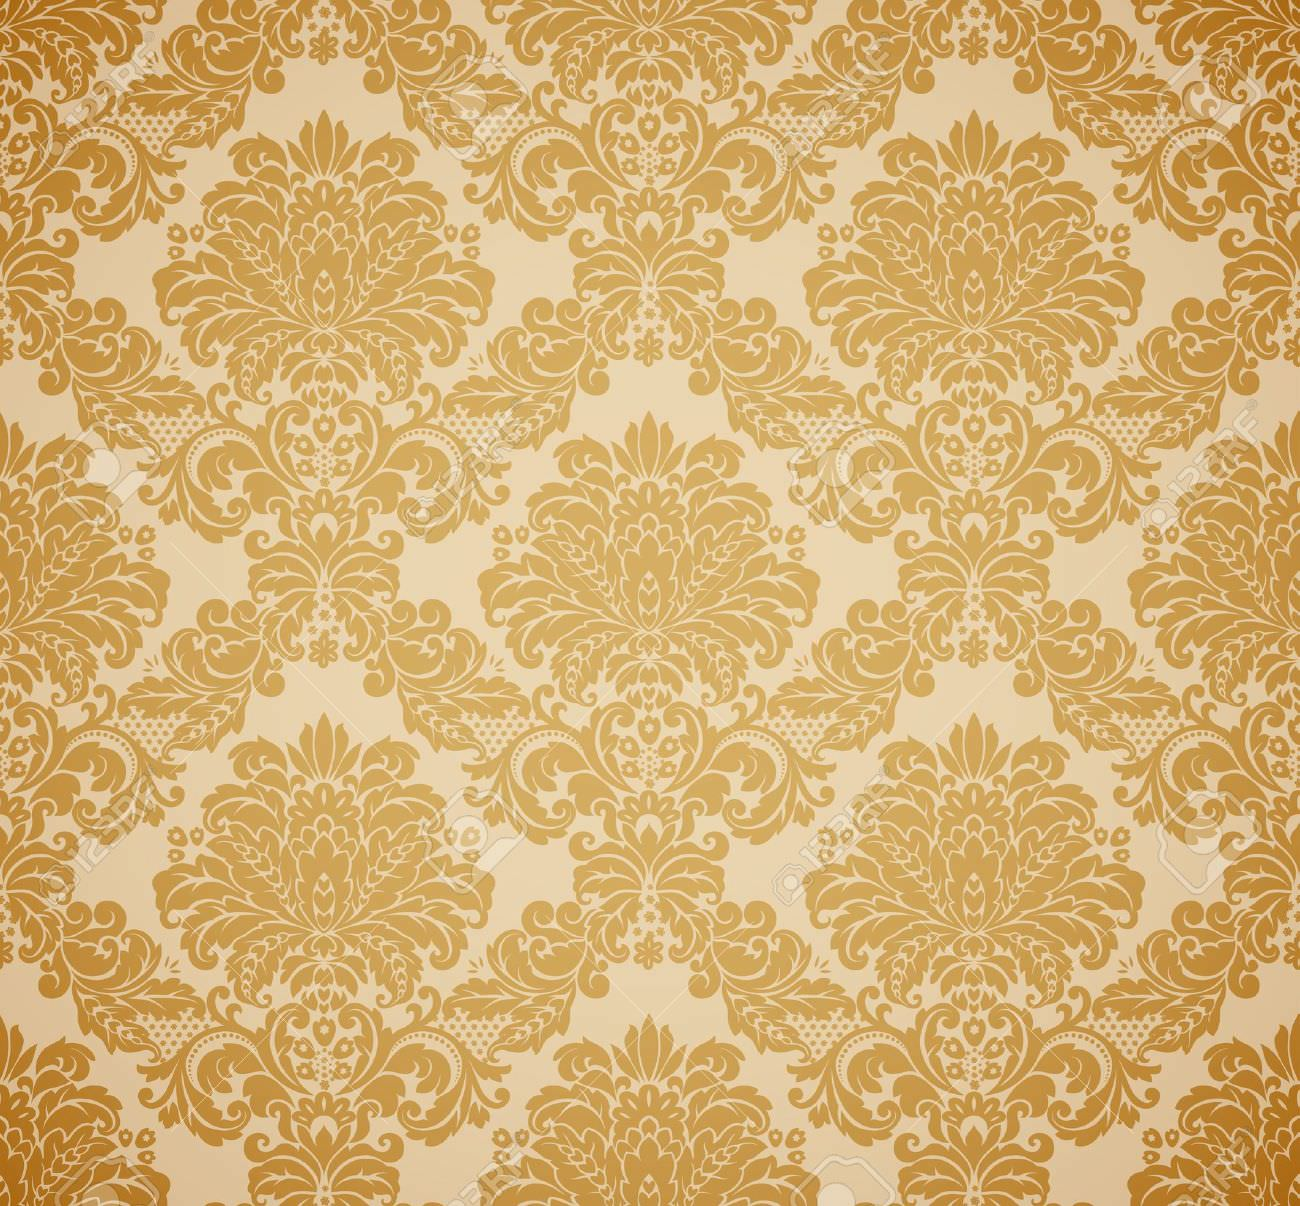 83 Gold Backgrounds Wallpapers Images Pictures